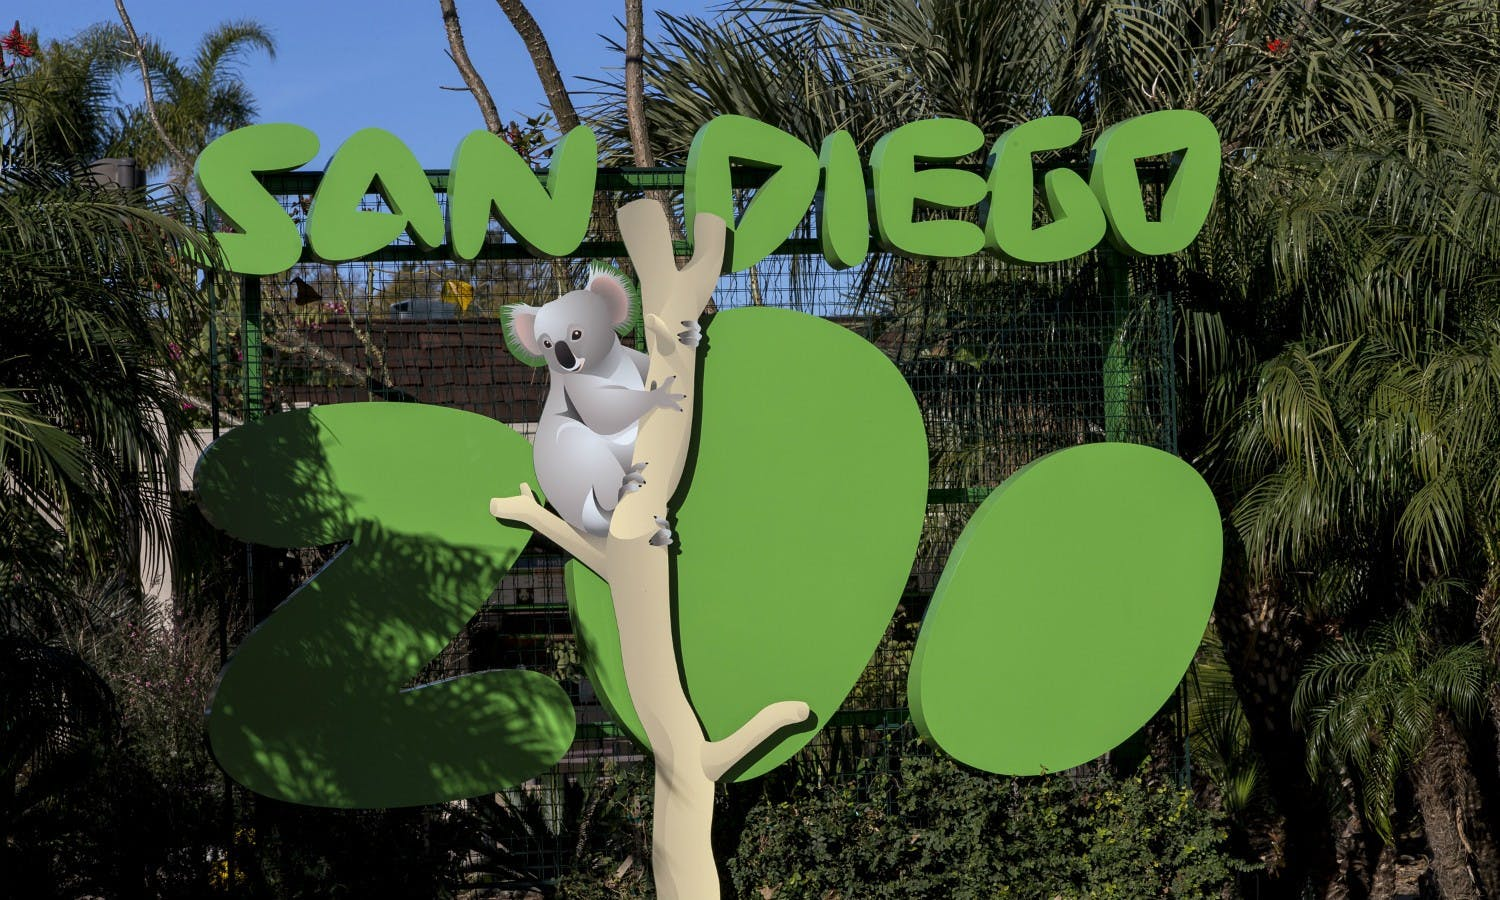 San Diego Zoo 1-day pass tickets